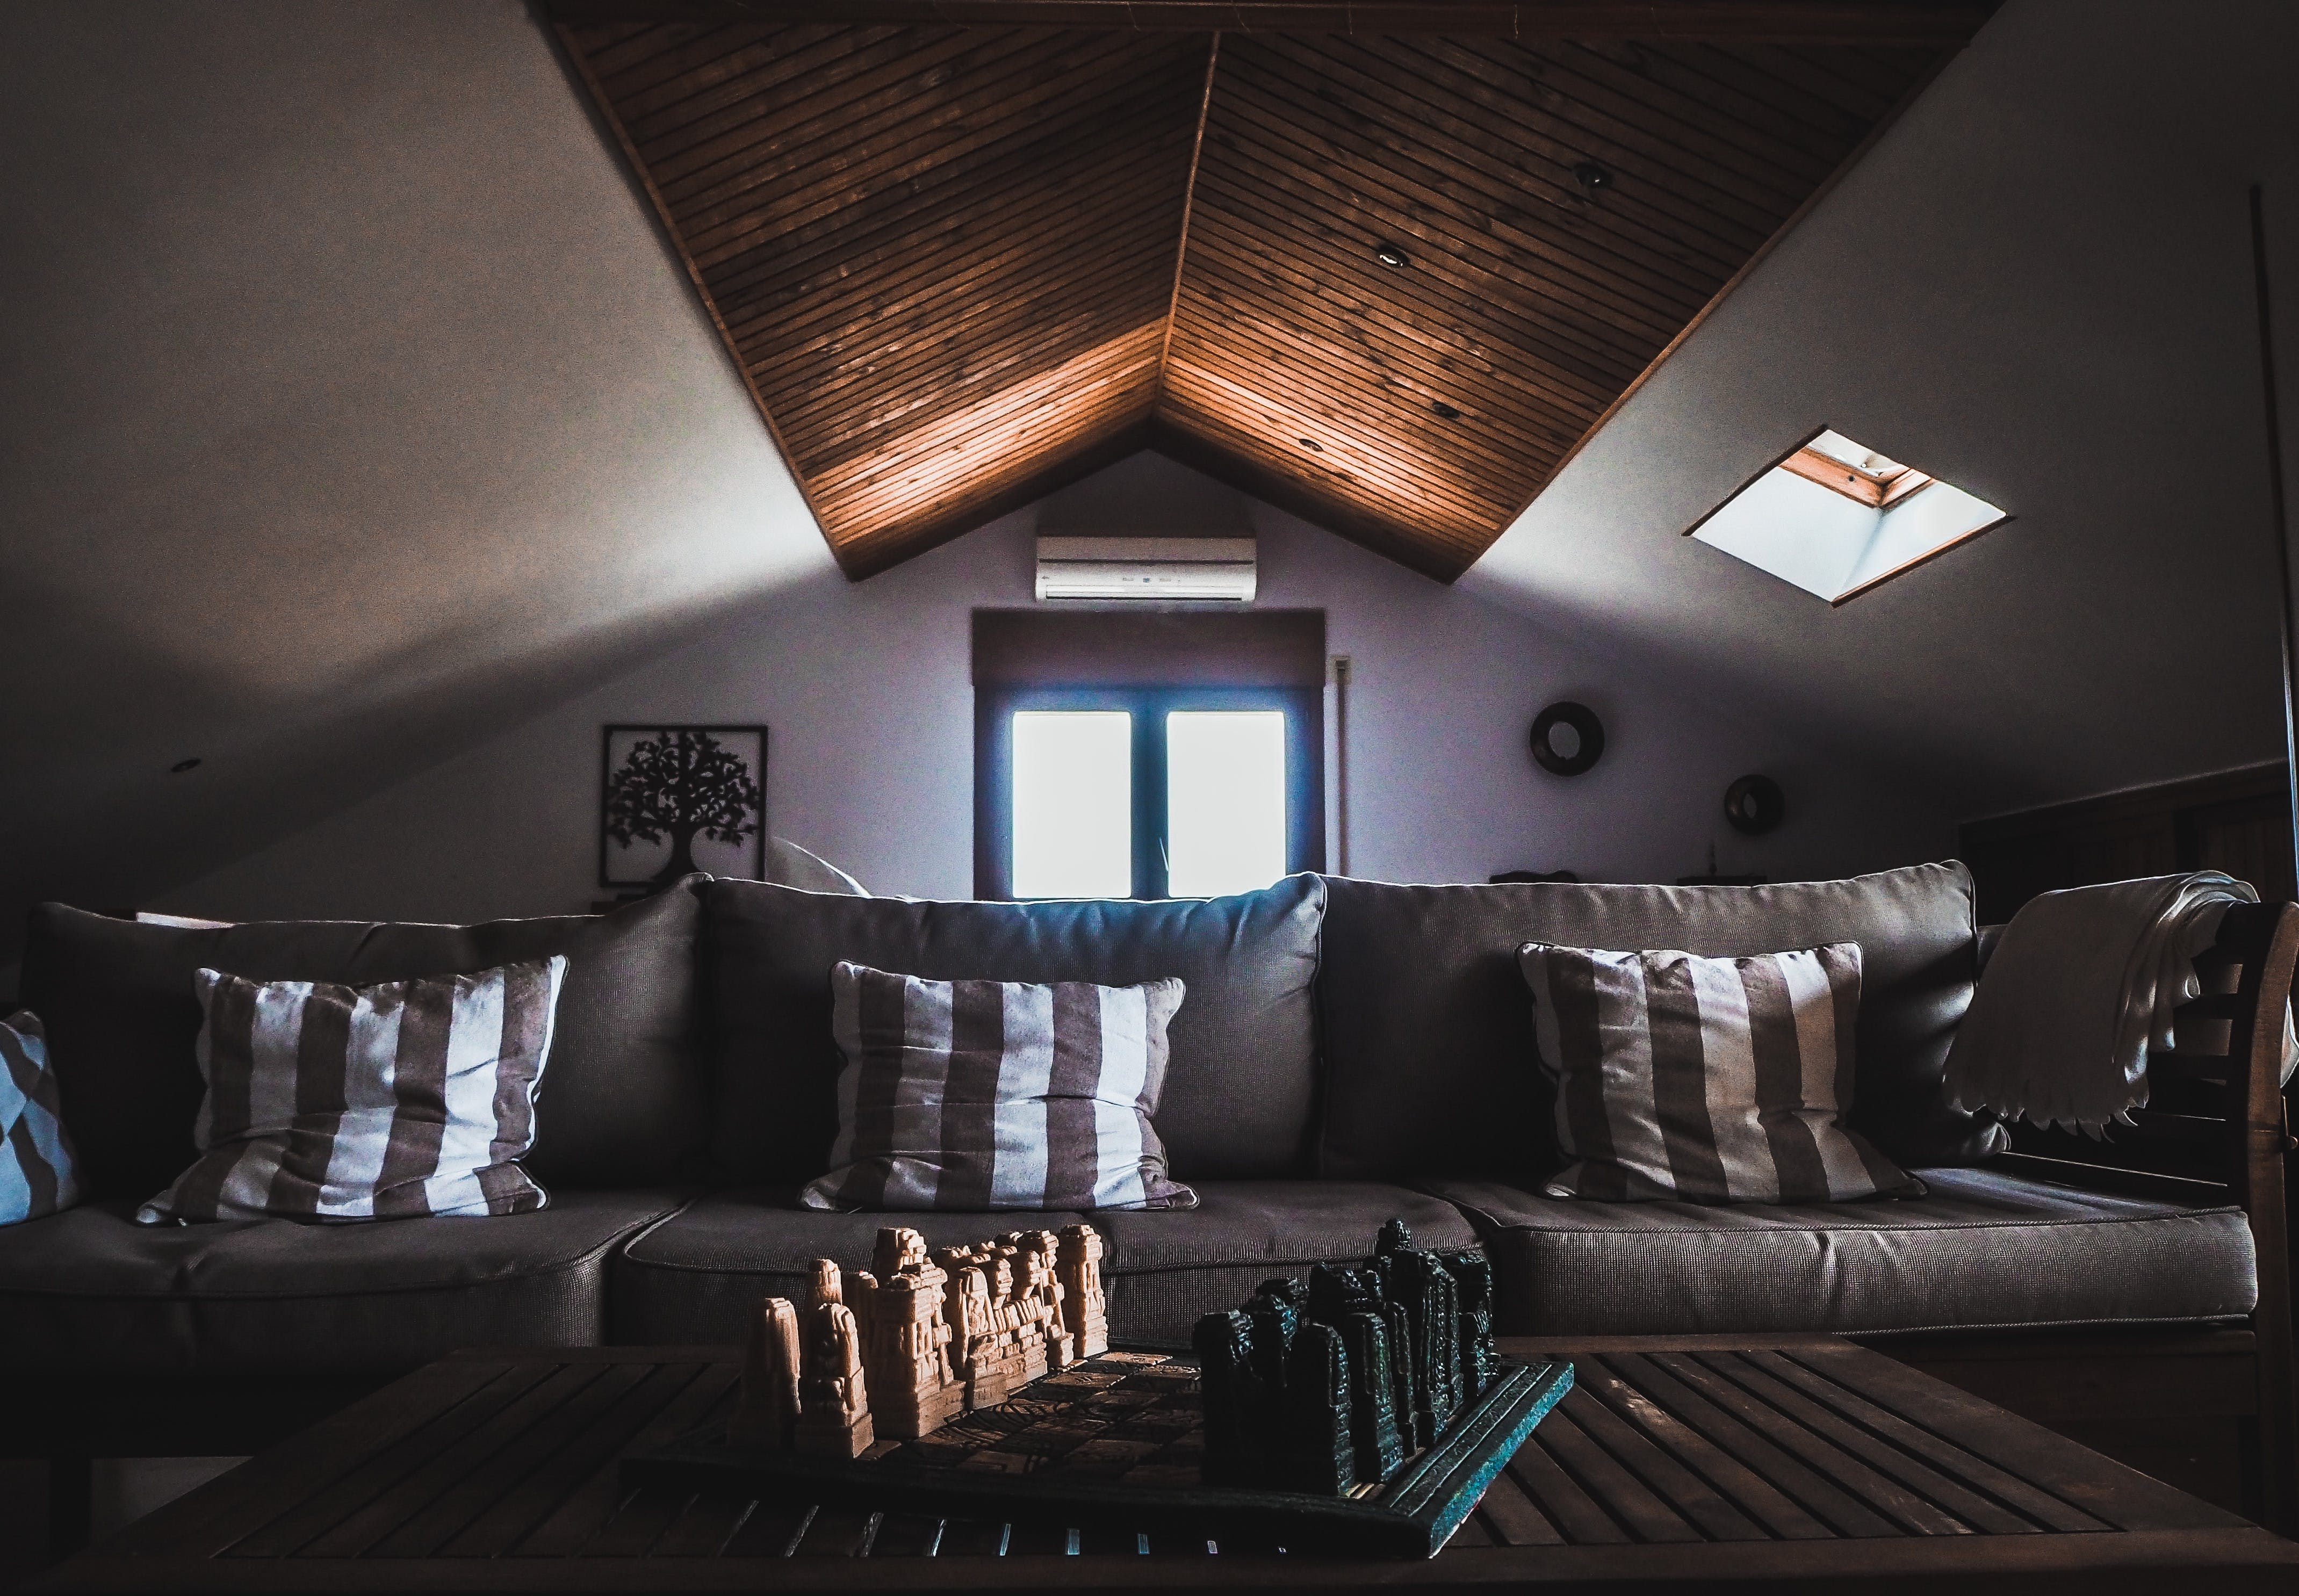 Free stock photo of 4k wallpaper, architecture design, beauty, bedroom